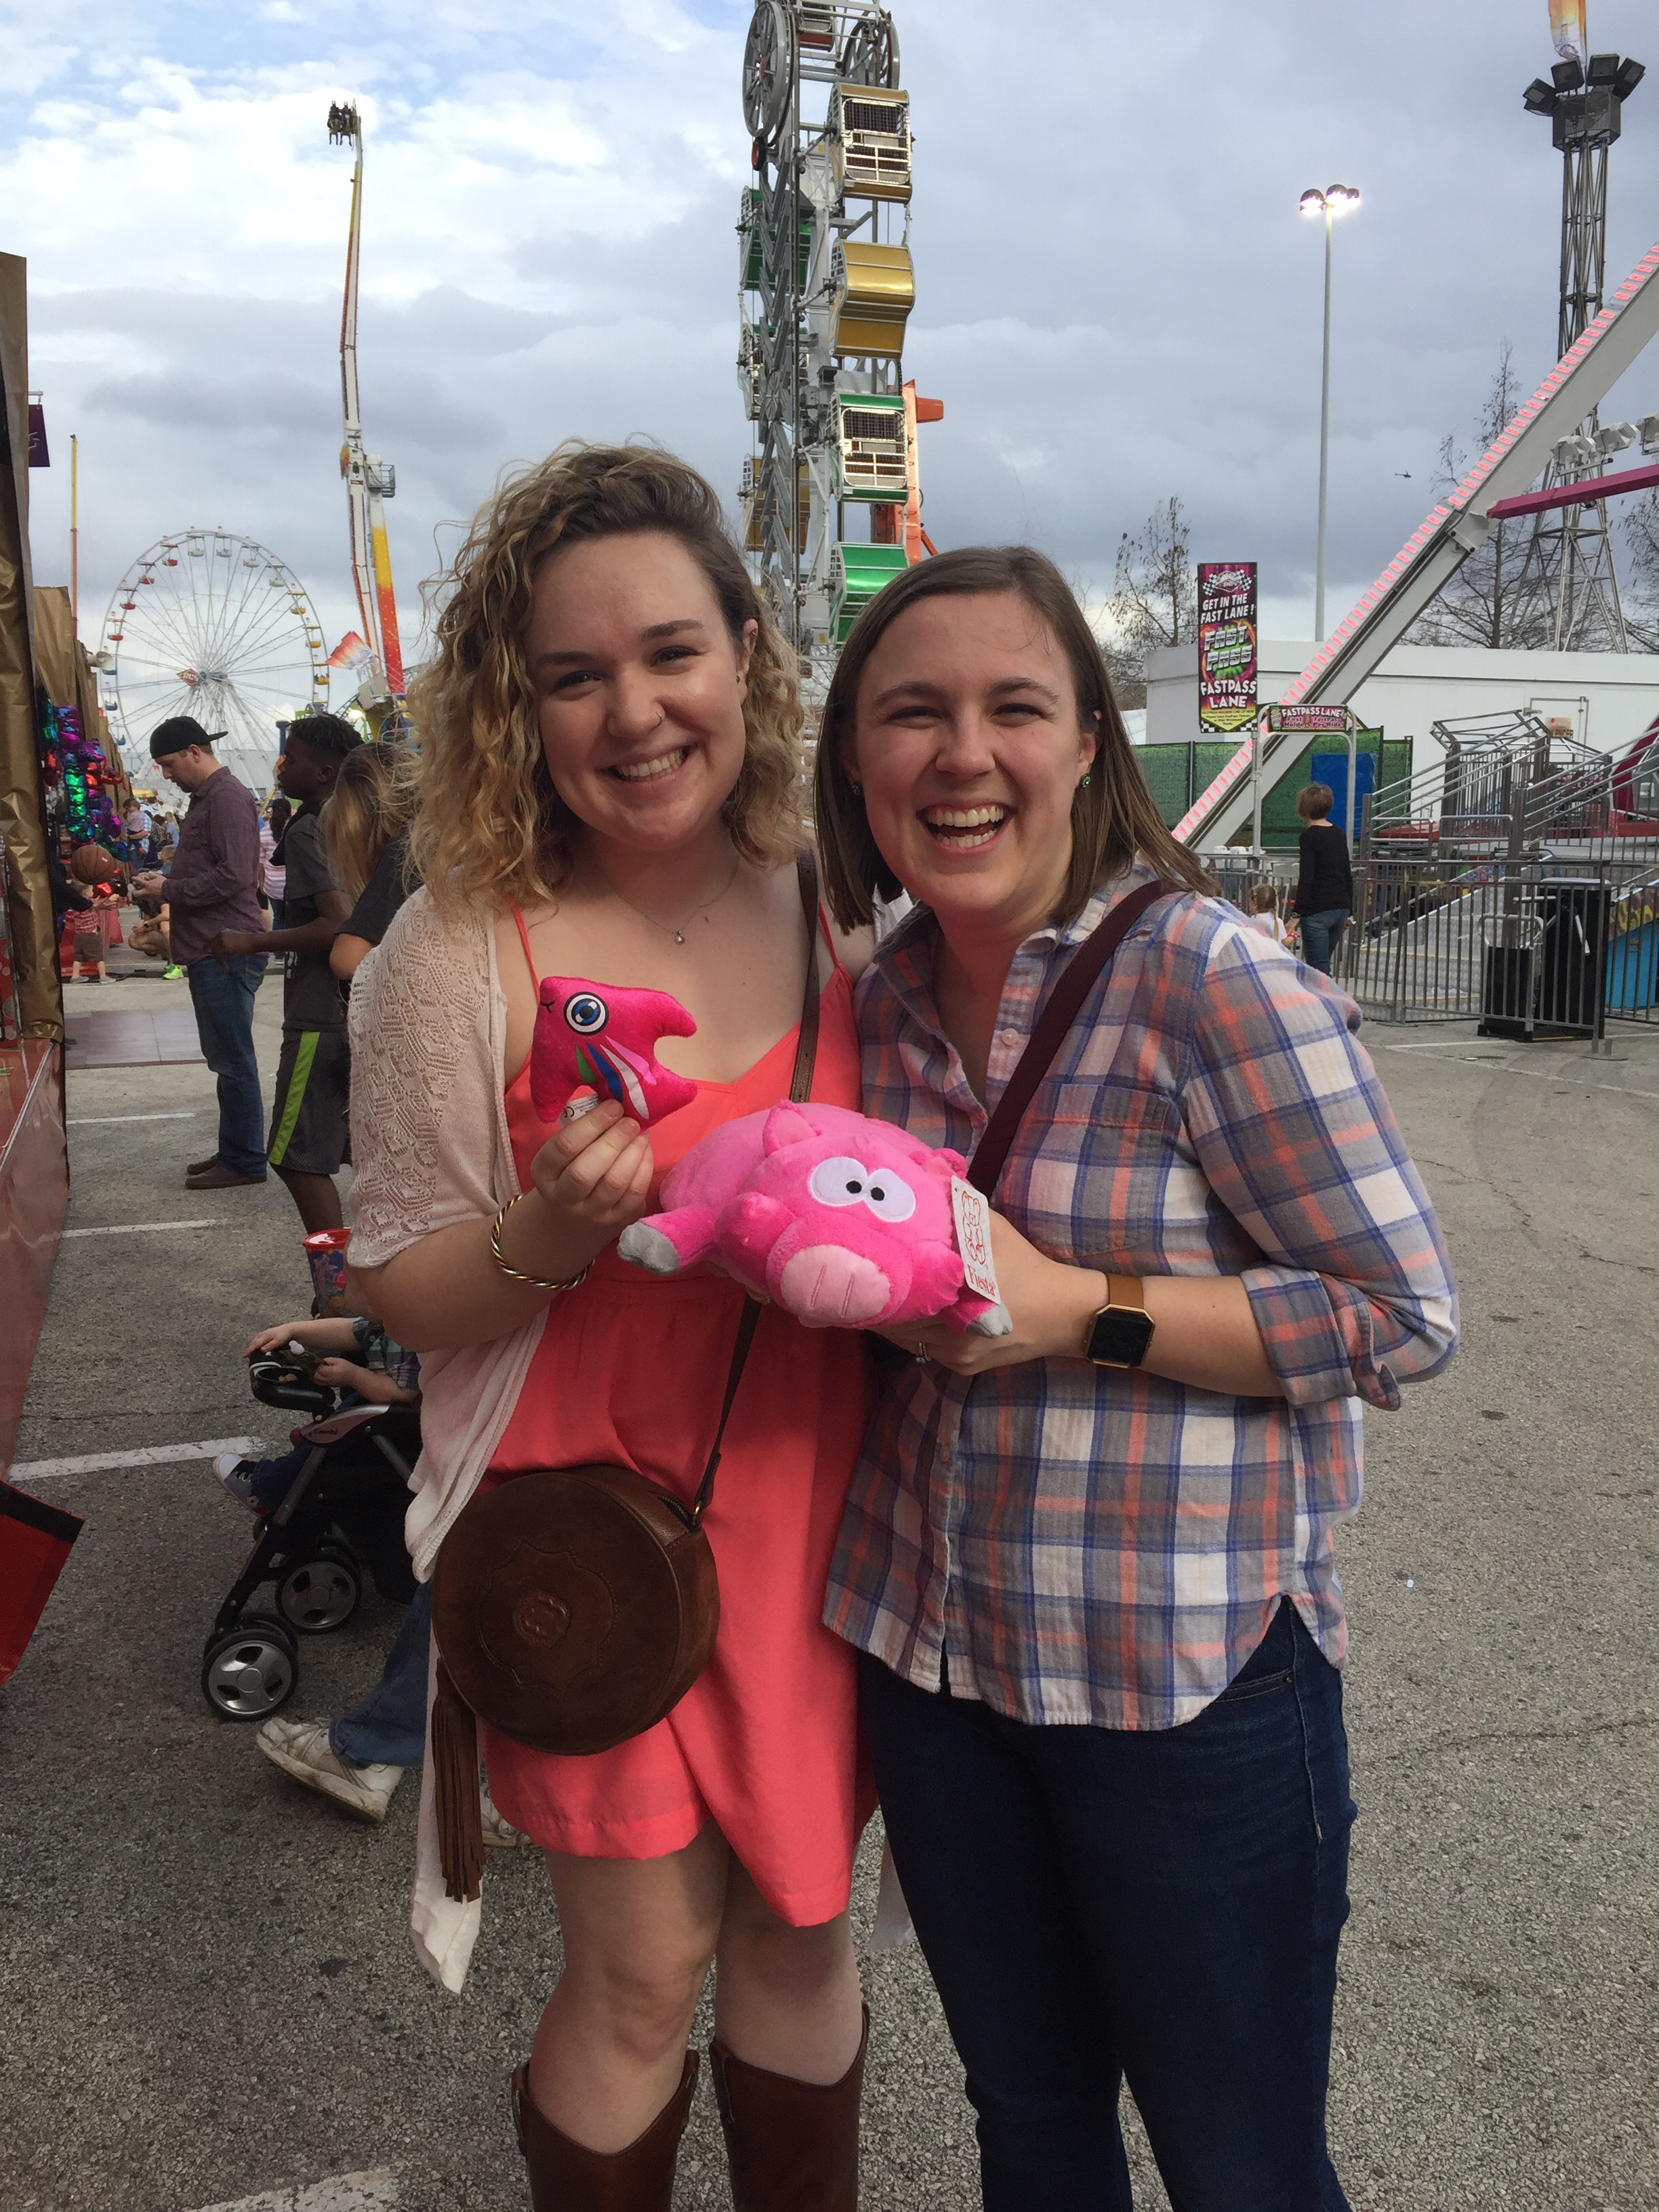 Elizabeth and Hadley showing off their prizes won at the 2018 Houston Rodeo Carnival.